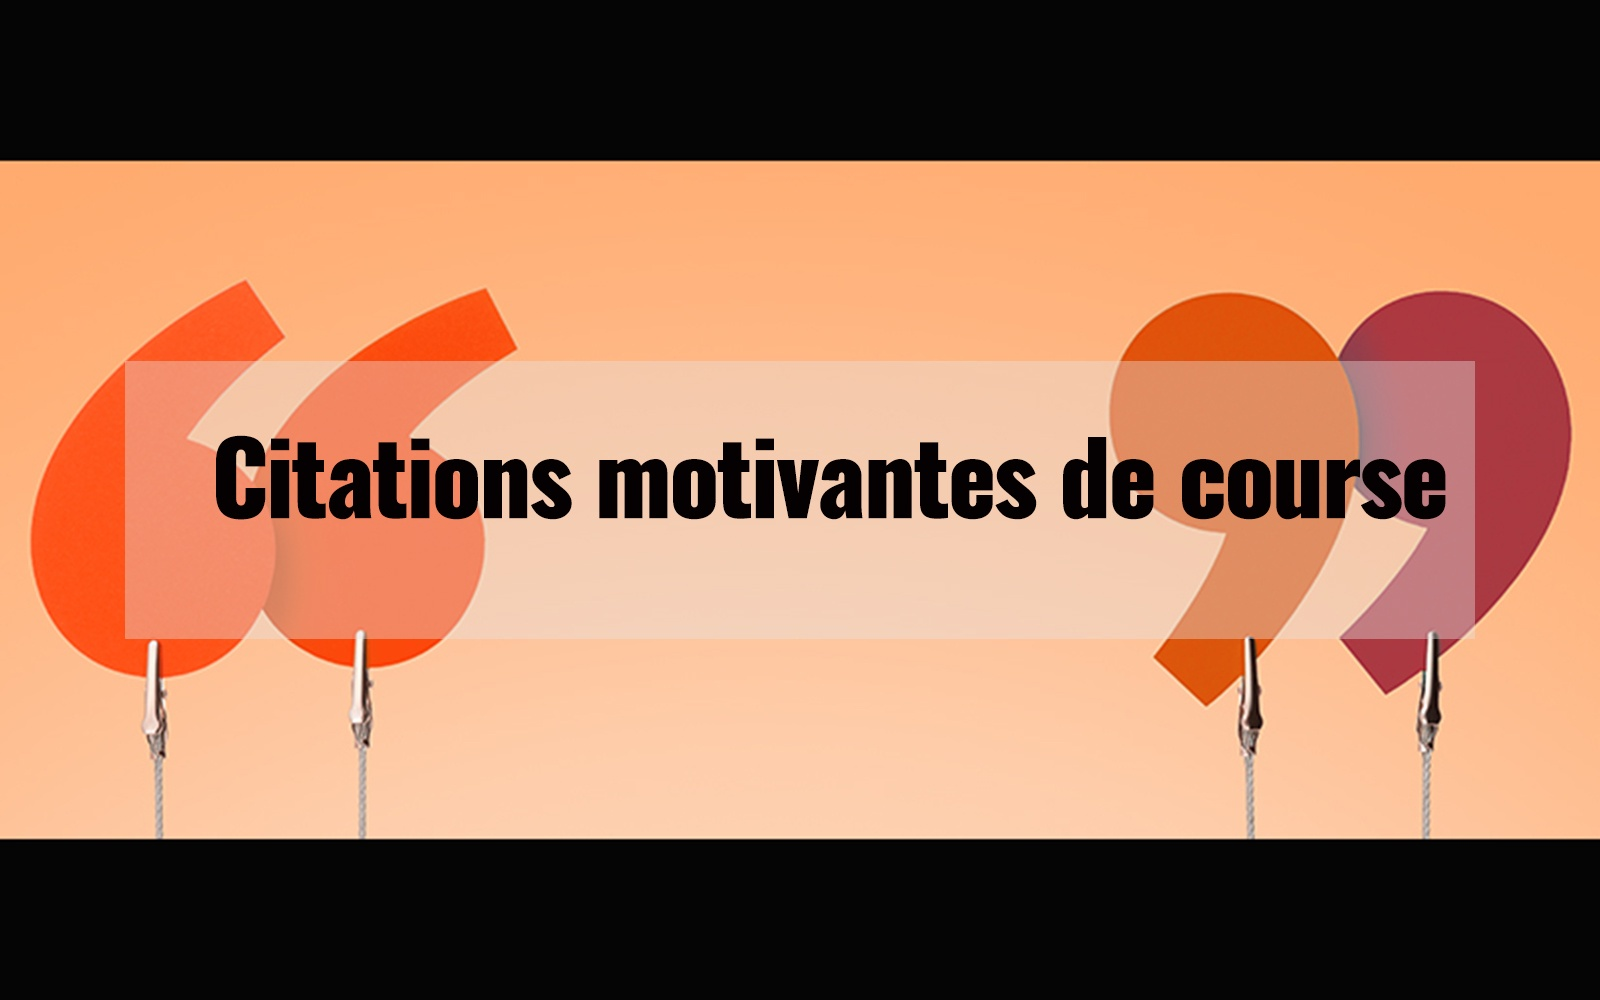 Citation Motivantes De Course à Pied Jogging Course